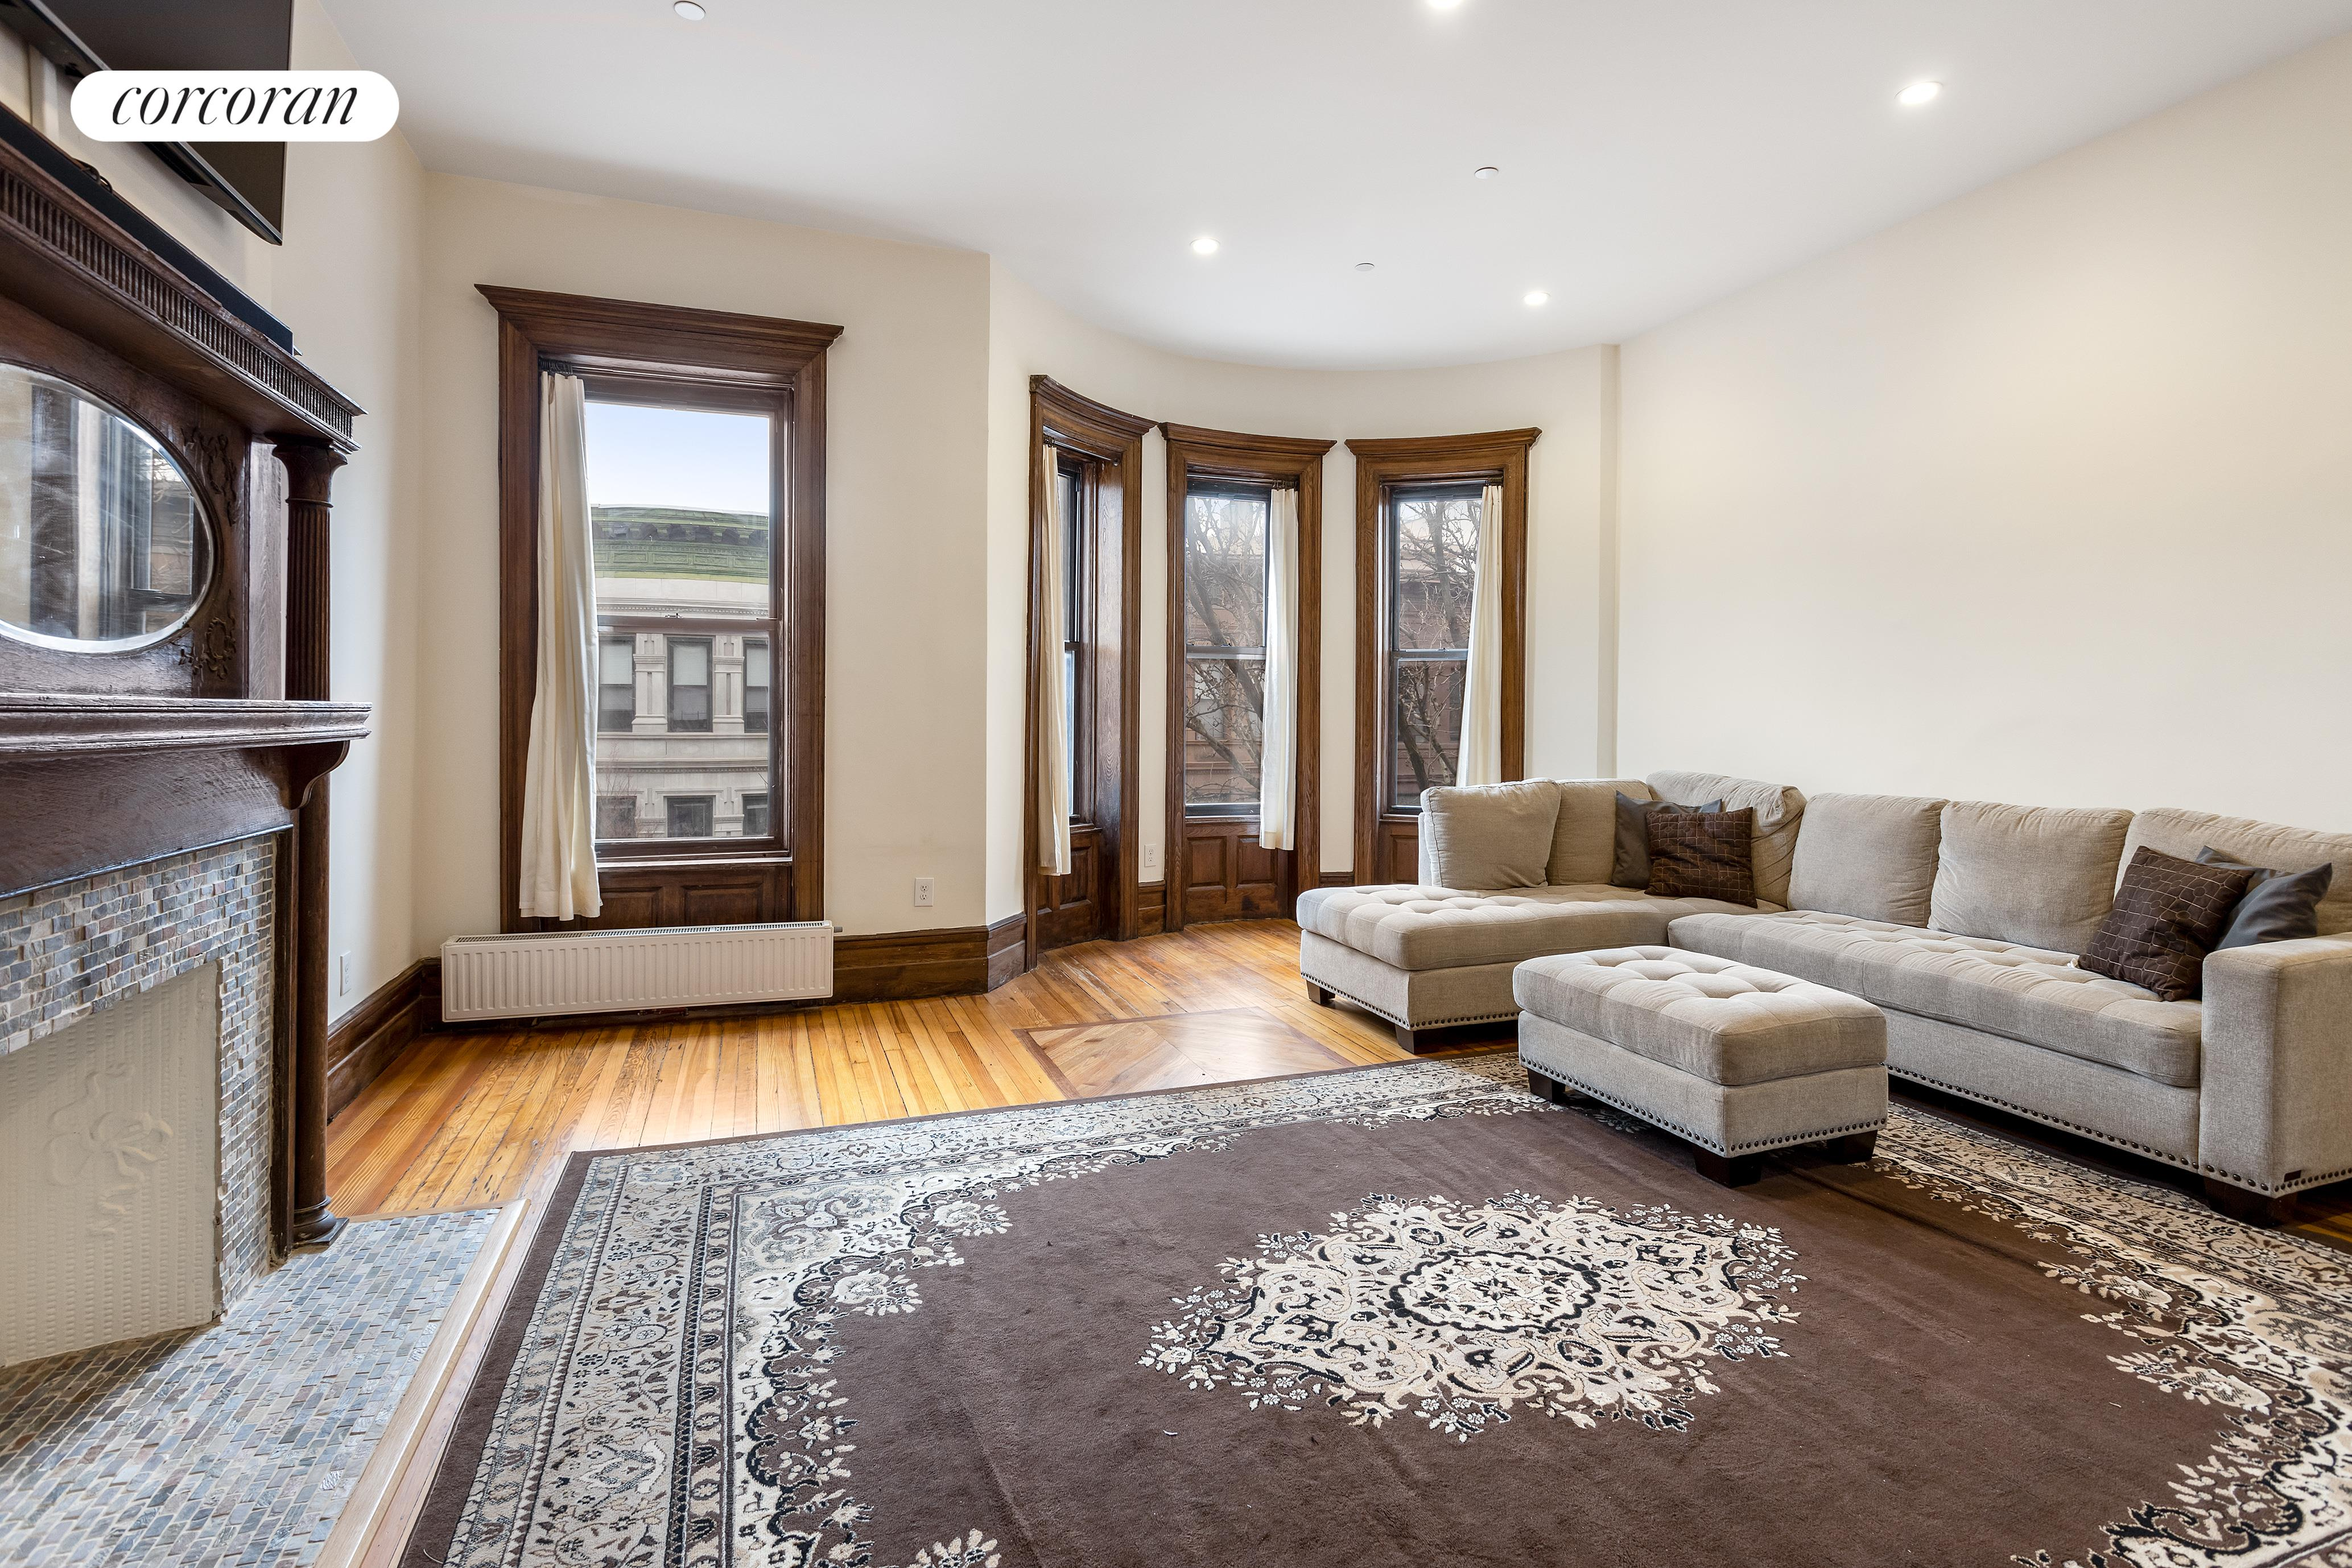 116 West 118th Street, 2, Living Room